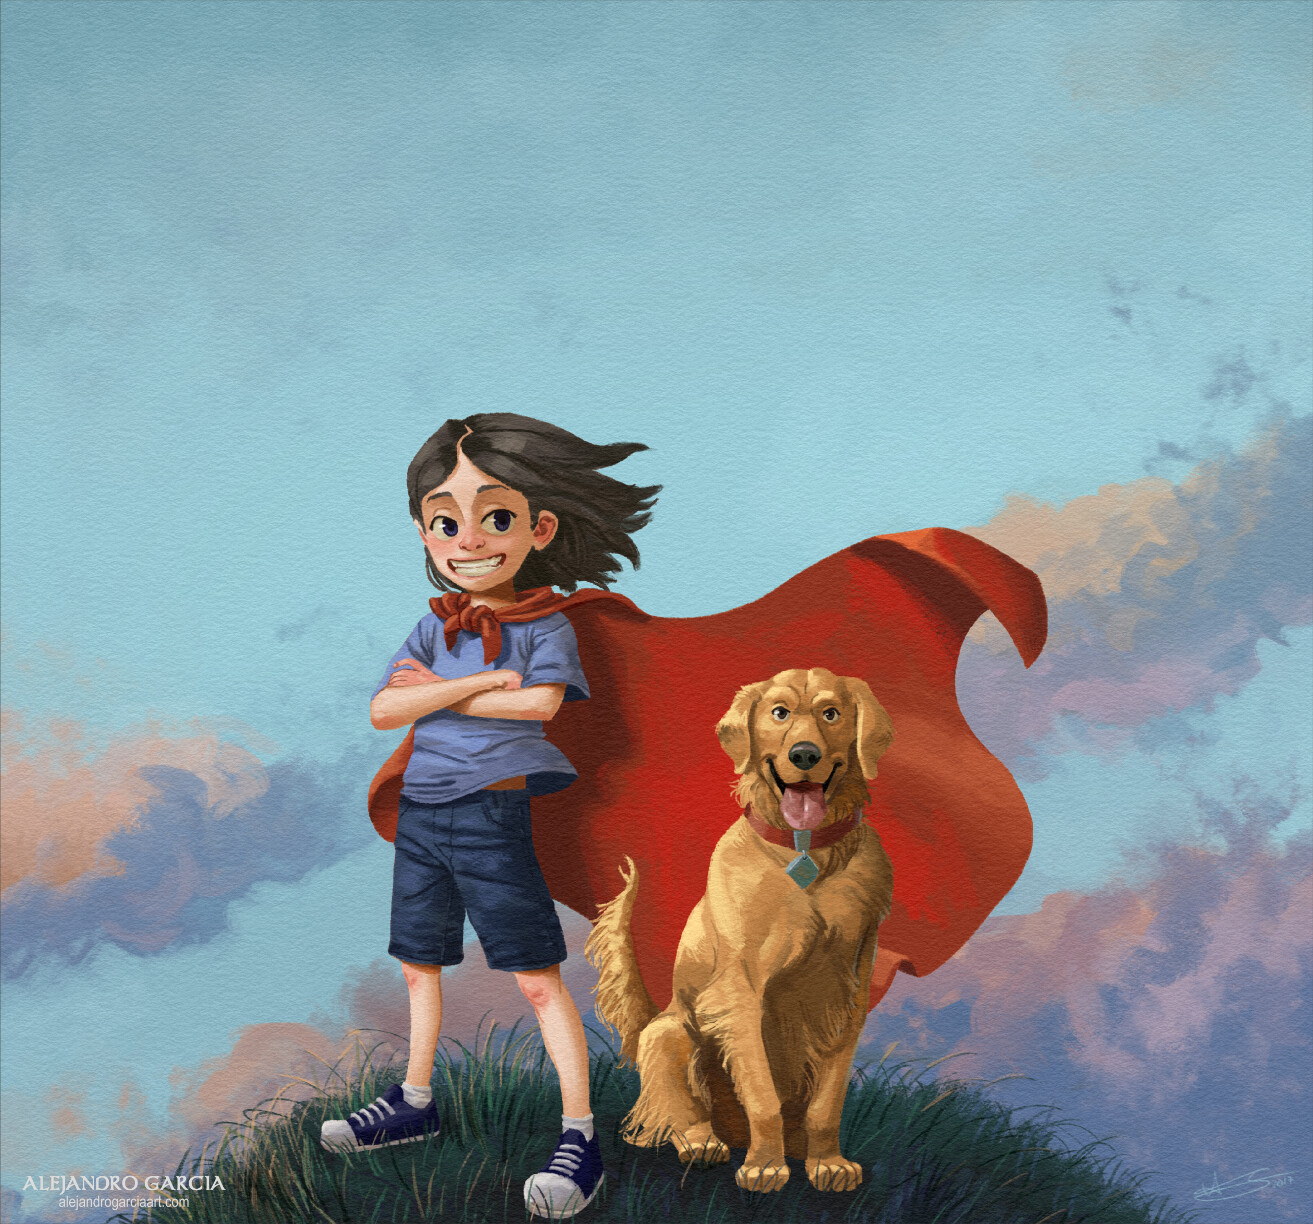 Children's book 'Charlotte y su perro Kiko' illustrations